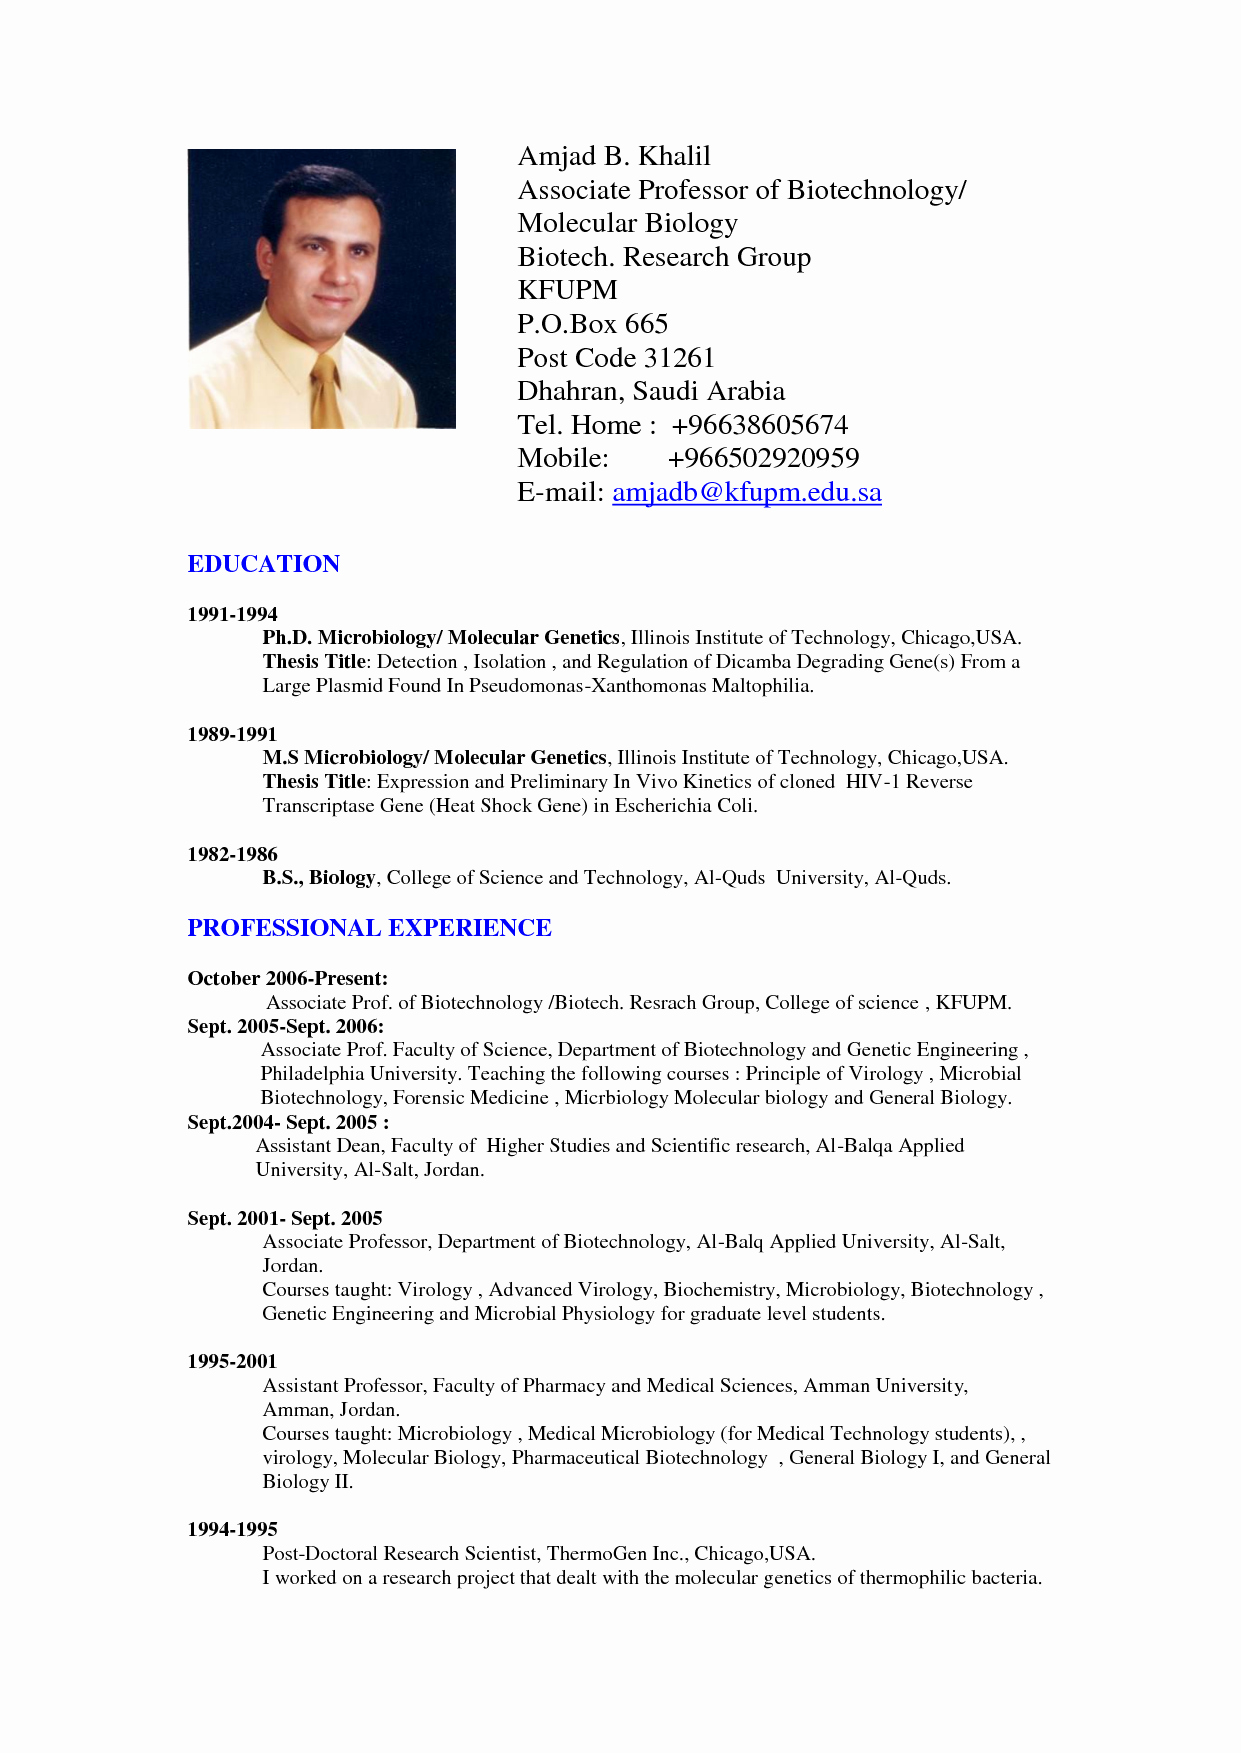 Sample Of Curriculum Vitae format Beautiful Professional Resume format Doc